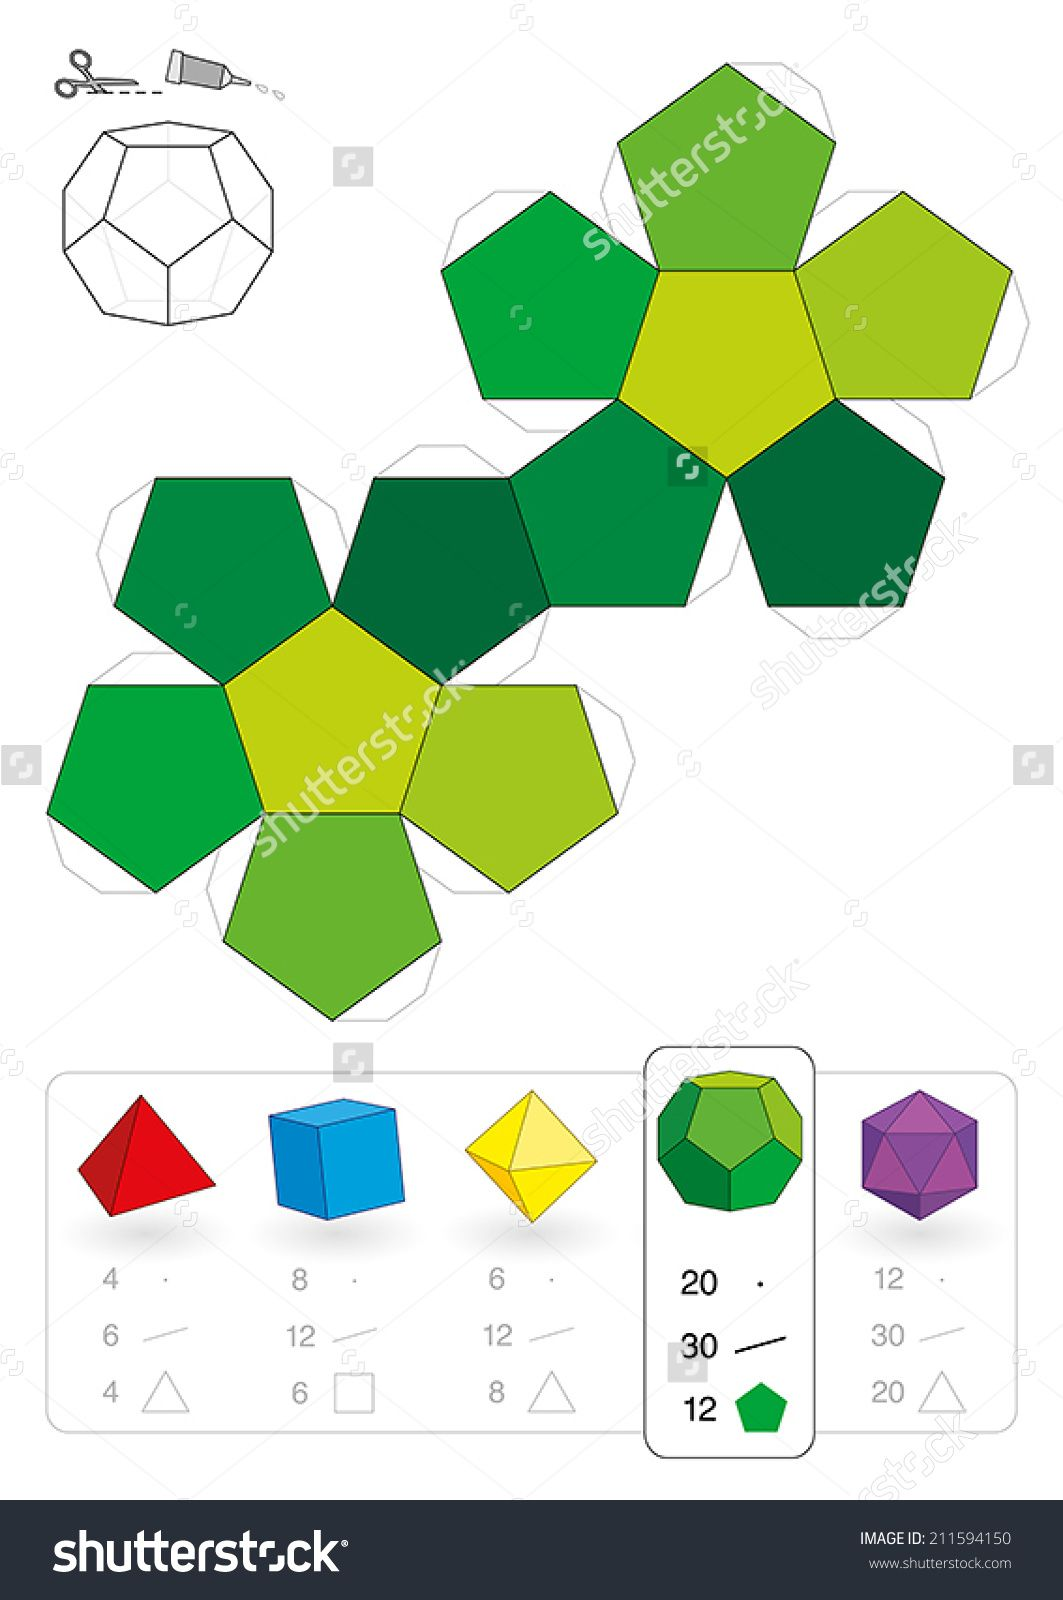 Cardboard Templates For Polyhedrons Google Search Polyhedron